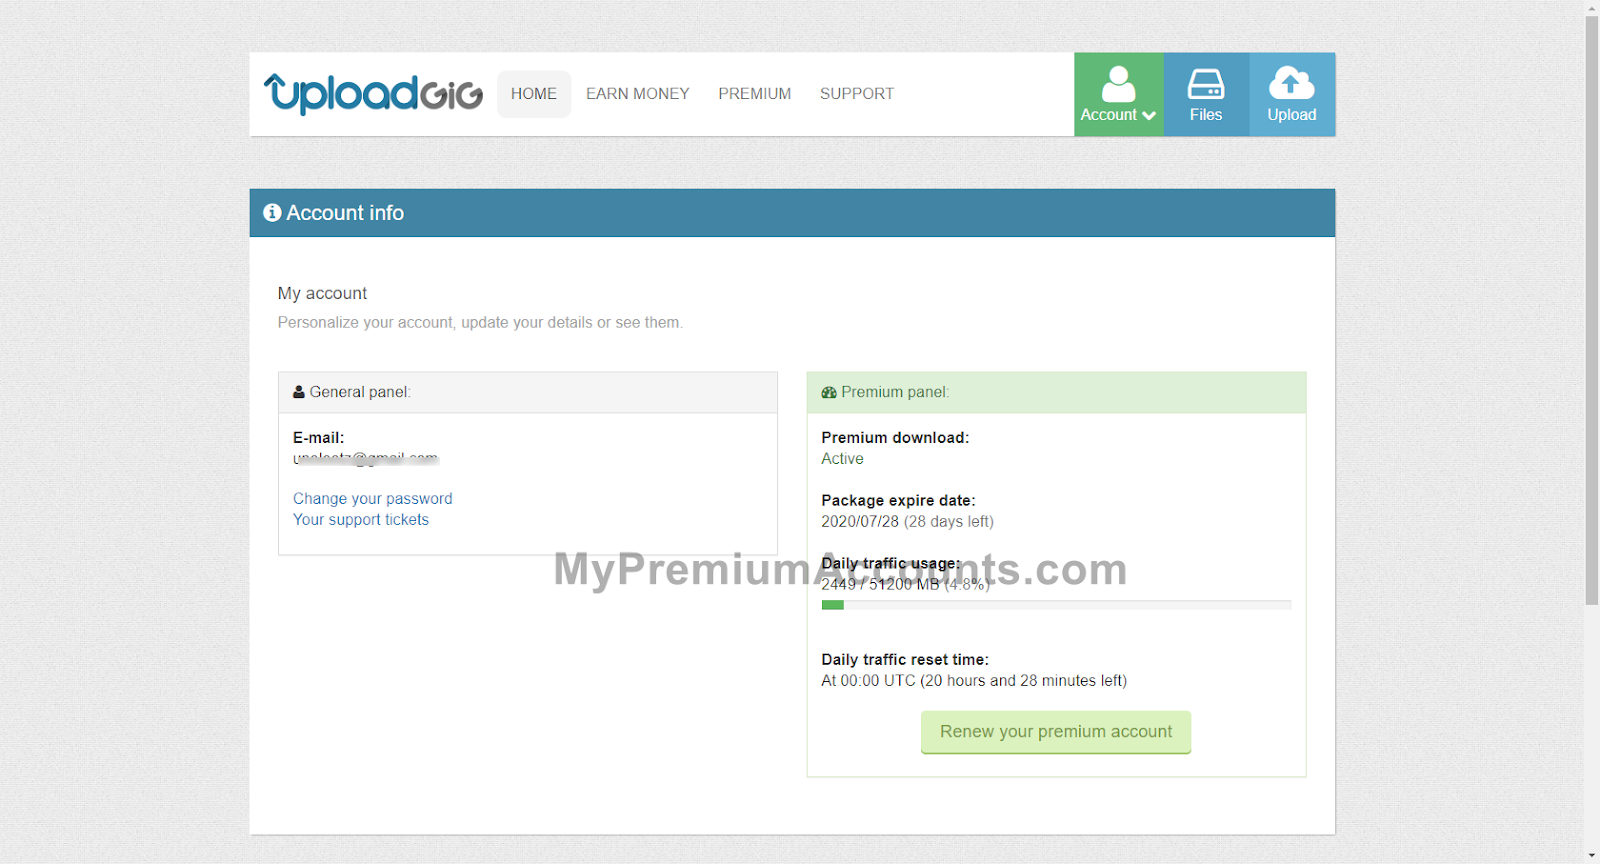 UploadGIG.com Premium Account June 30, 2020 till (28 Days Left)